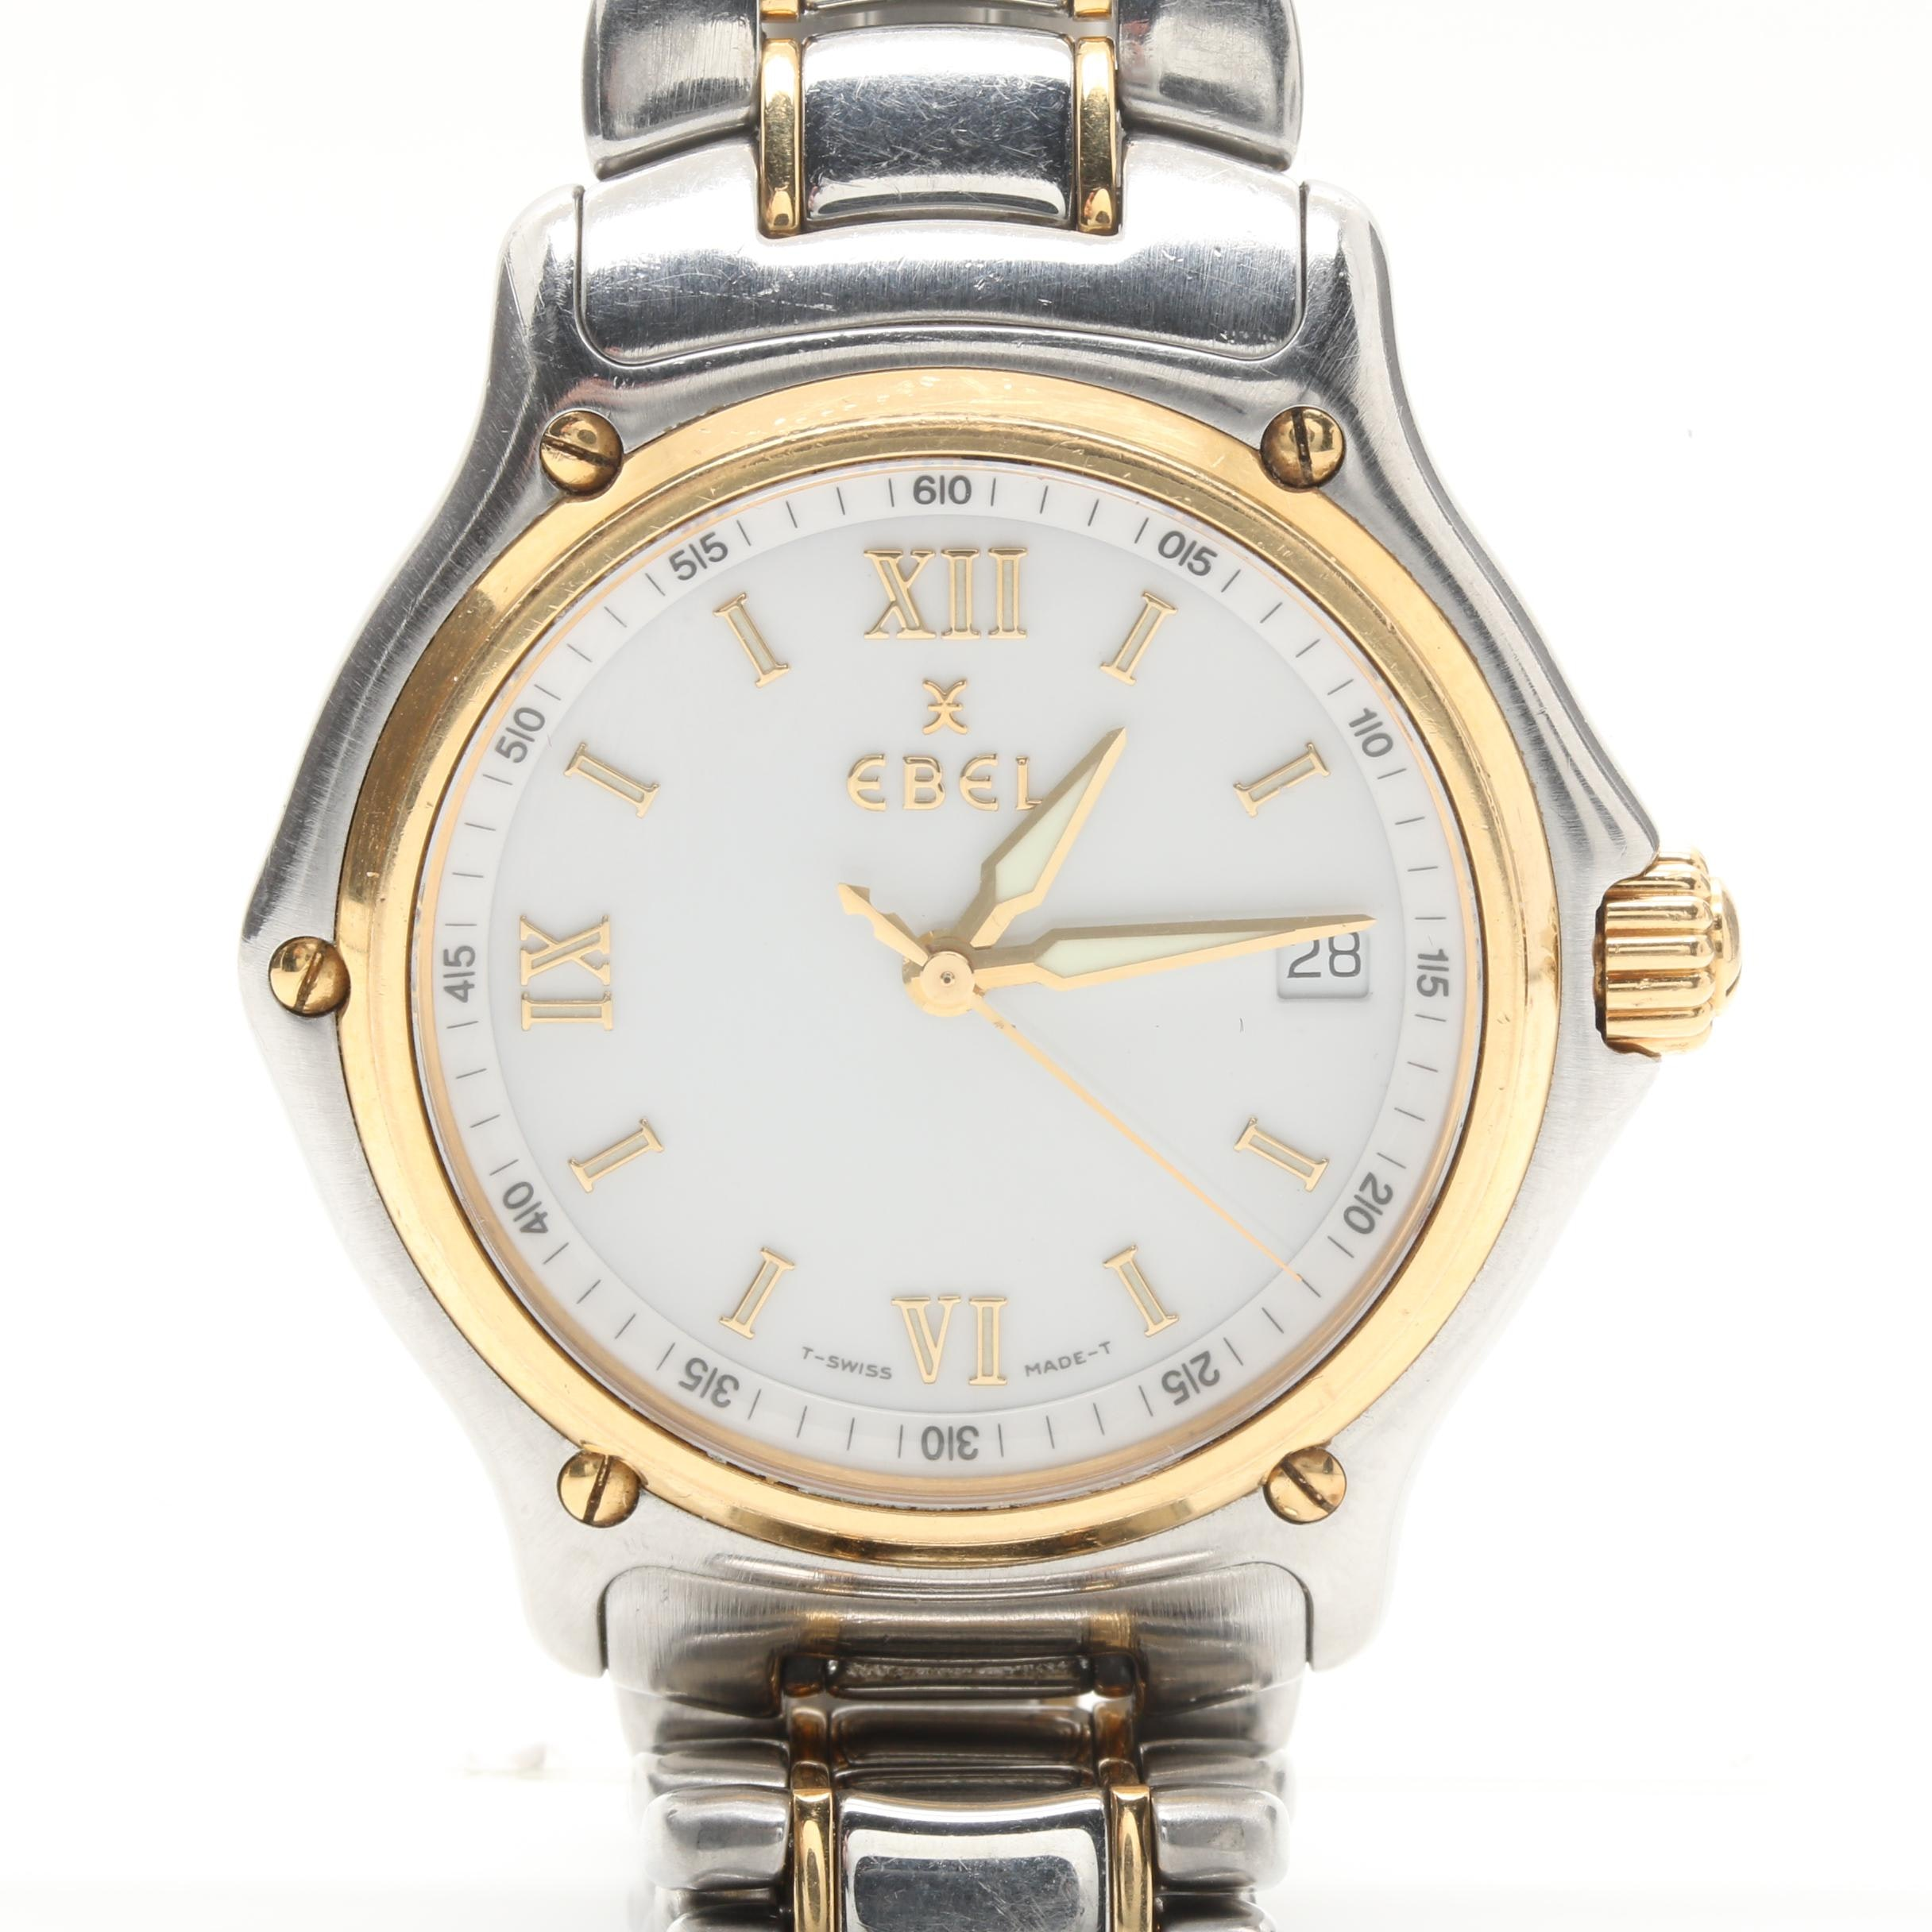 Ebel Two Tone Stainless Steel Wristwatch with 18K Yellow Gold Accents